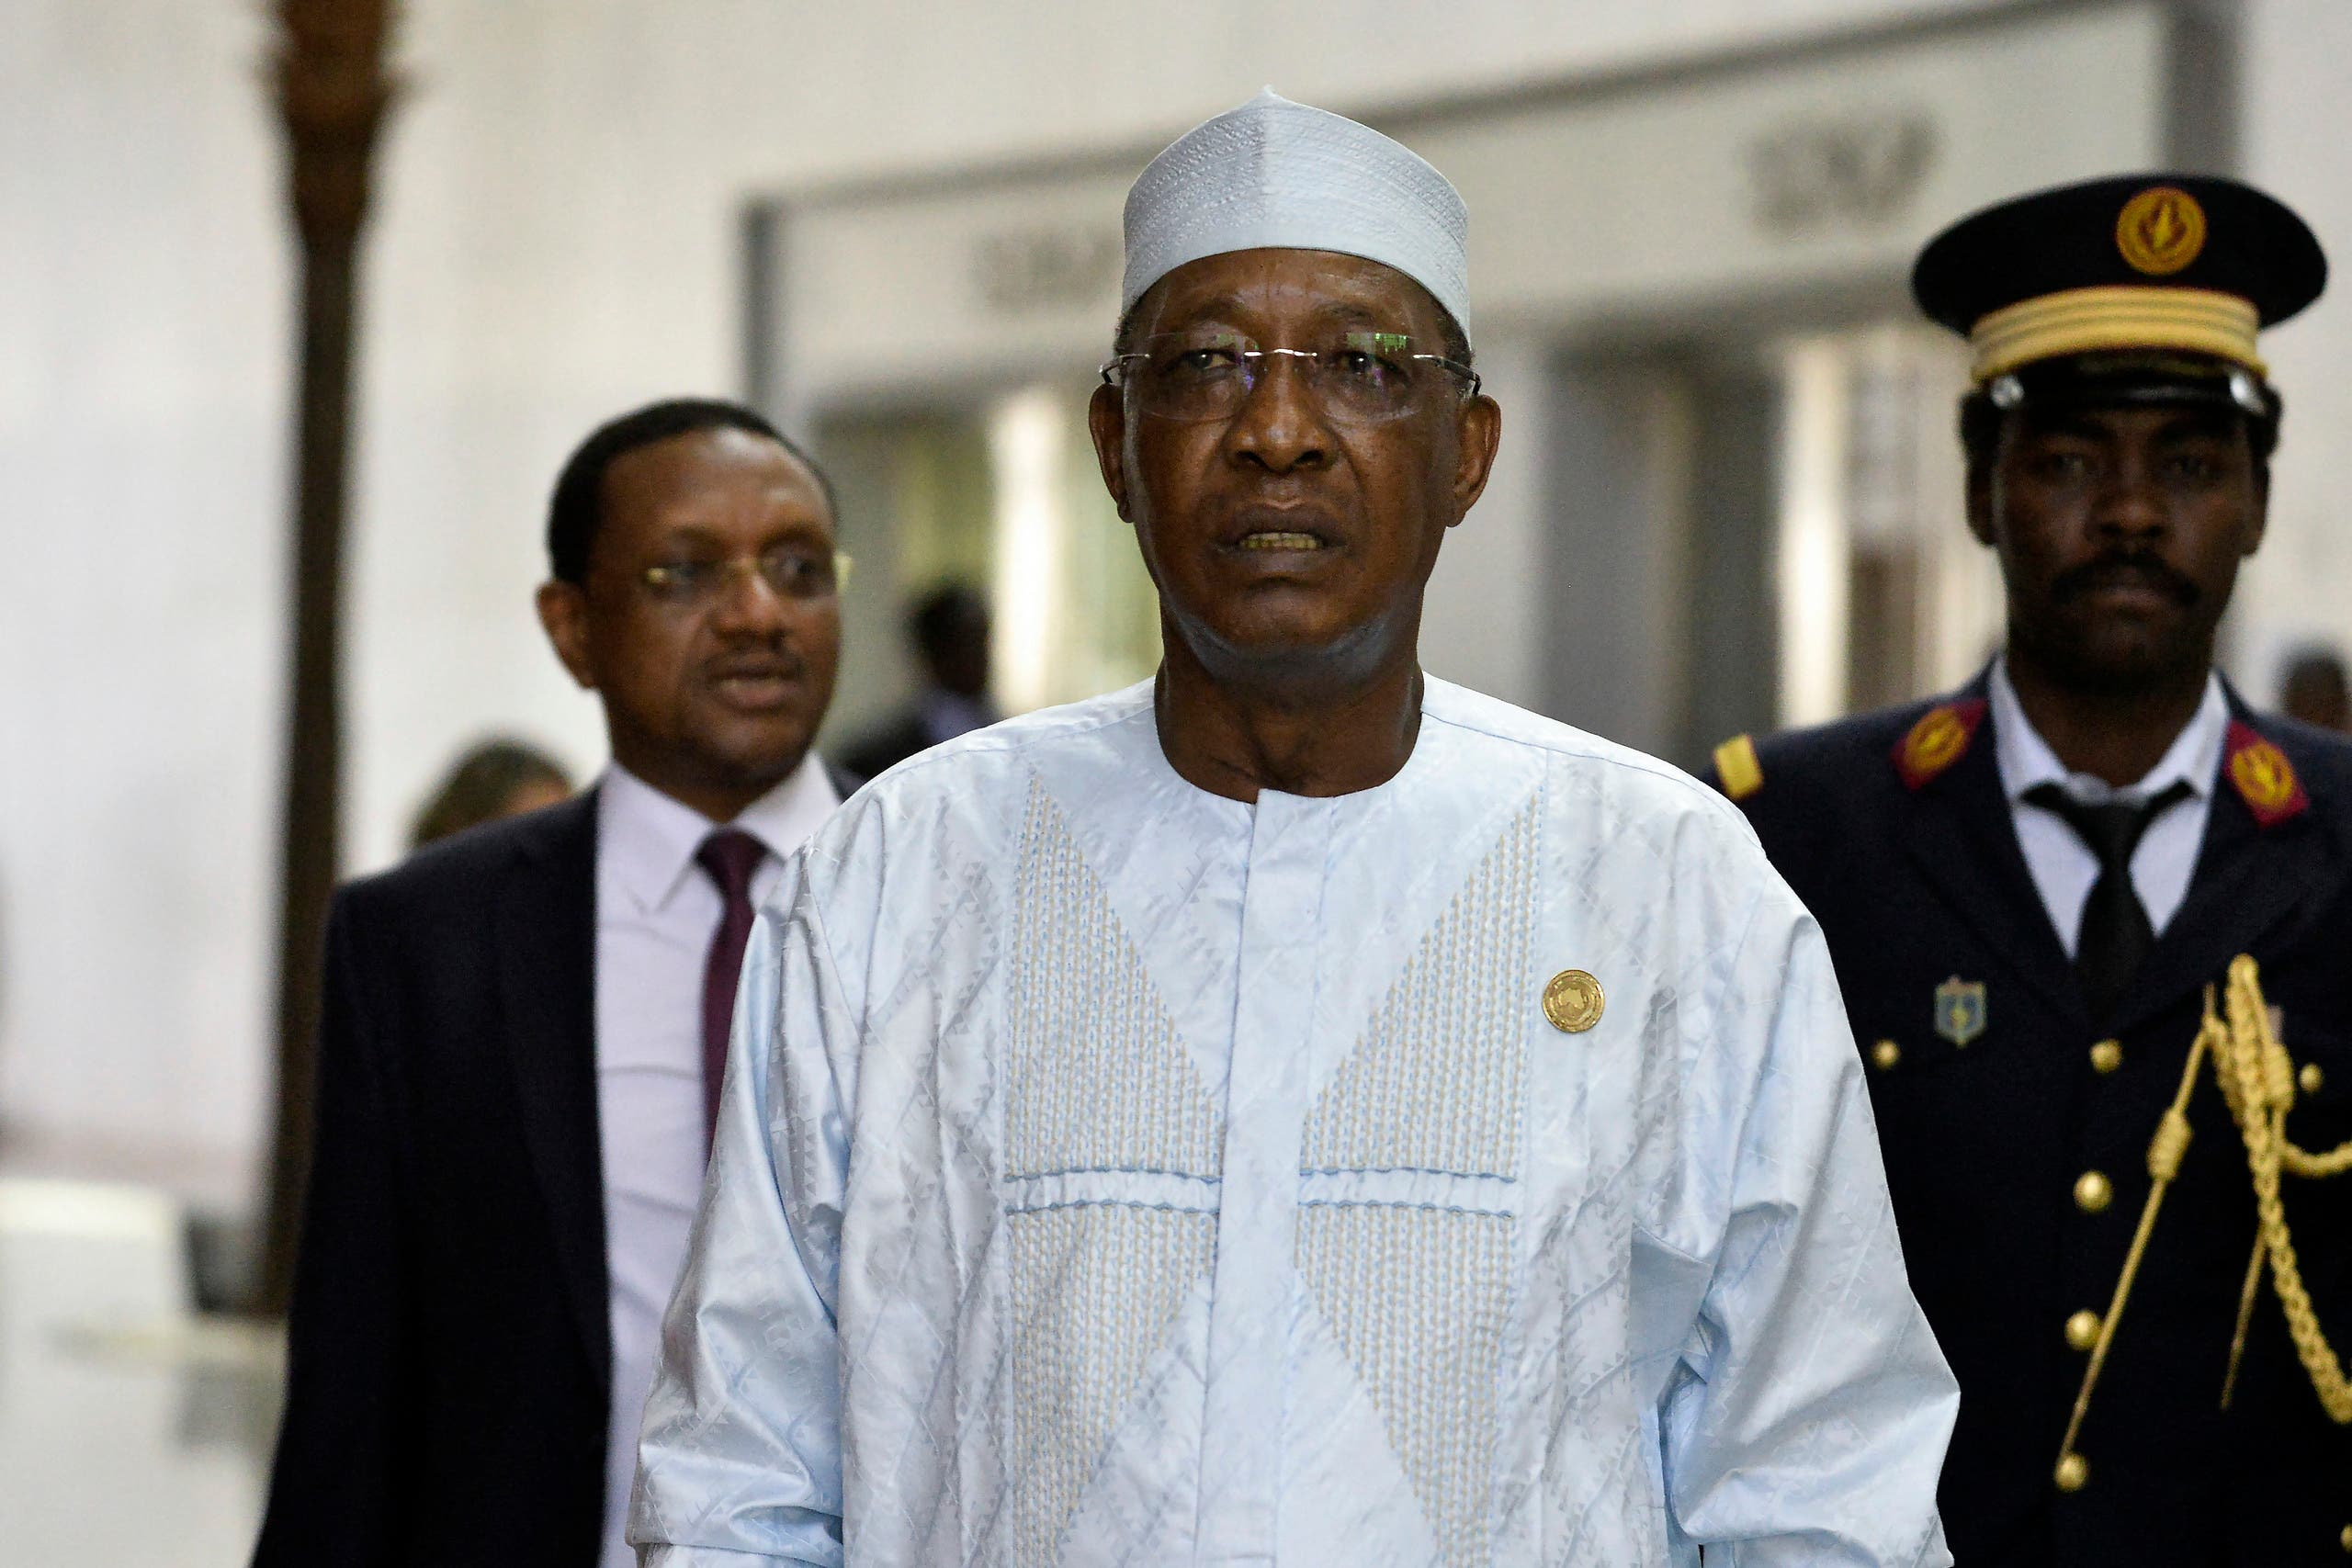 A file photo shows Chad's President Idriss Deby. (AFP)